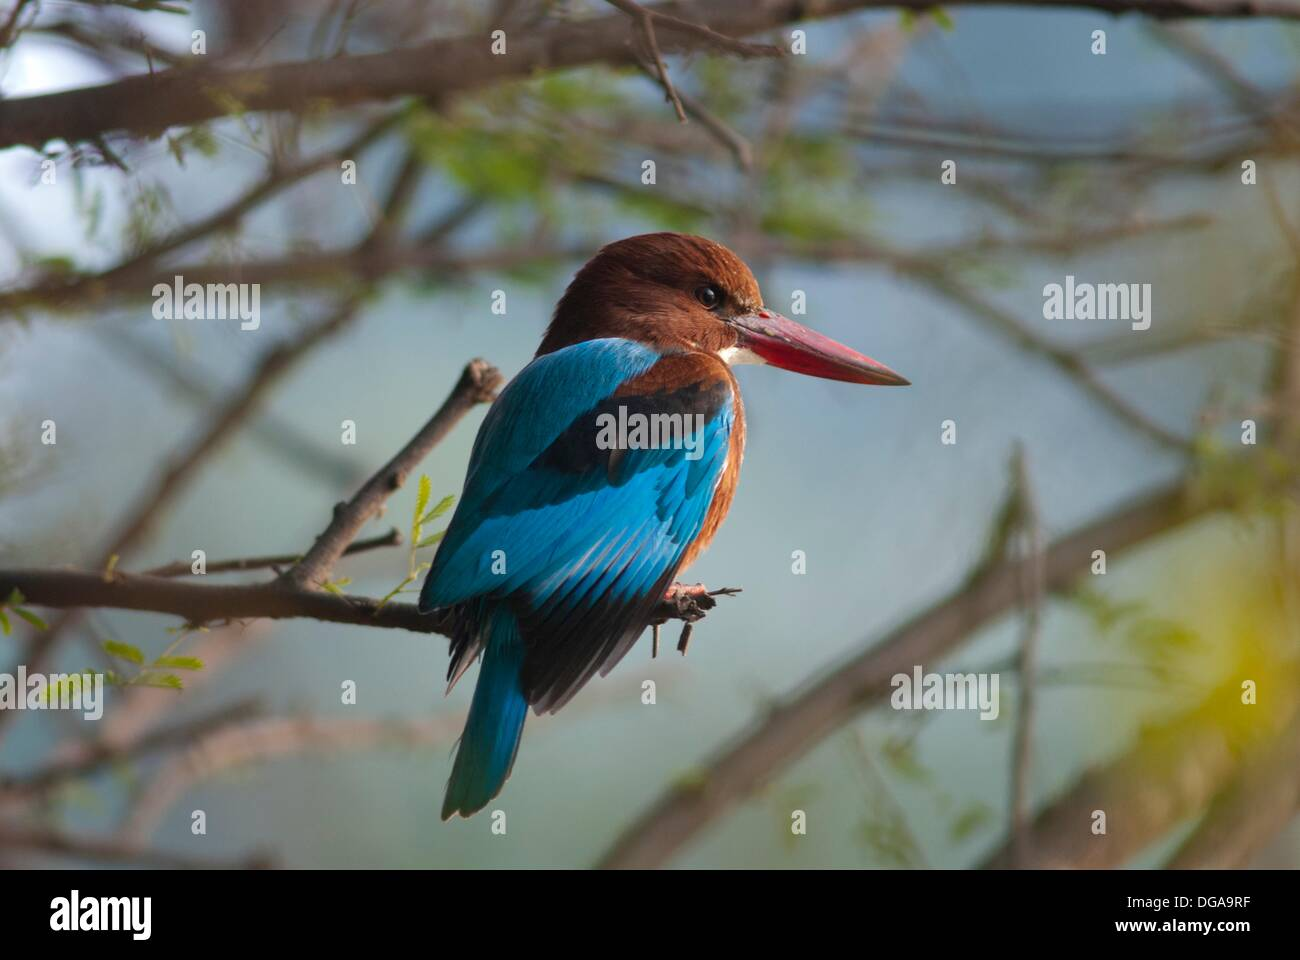 White-throated kingfisher Halcyon smyrnensis, perching on branch, Bharatpur, Rajasthan, India - Stock Image